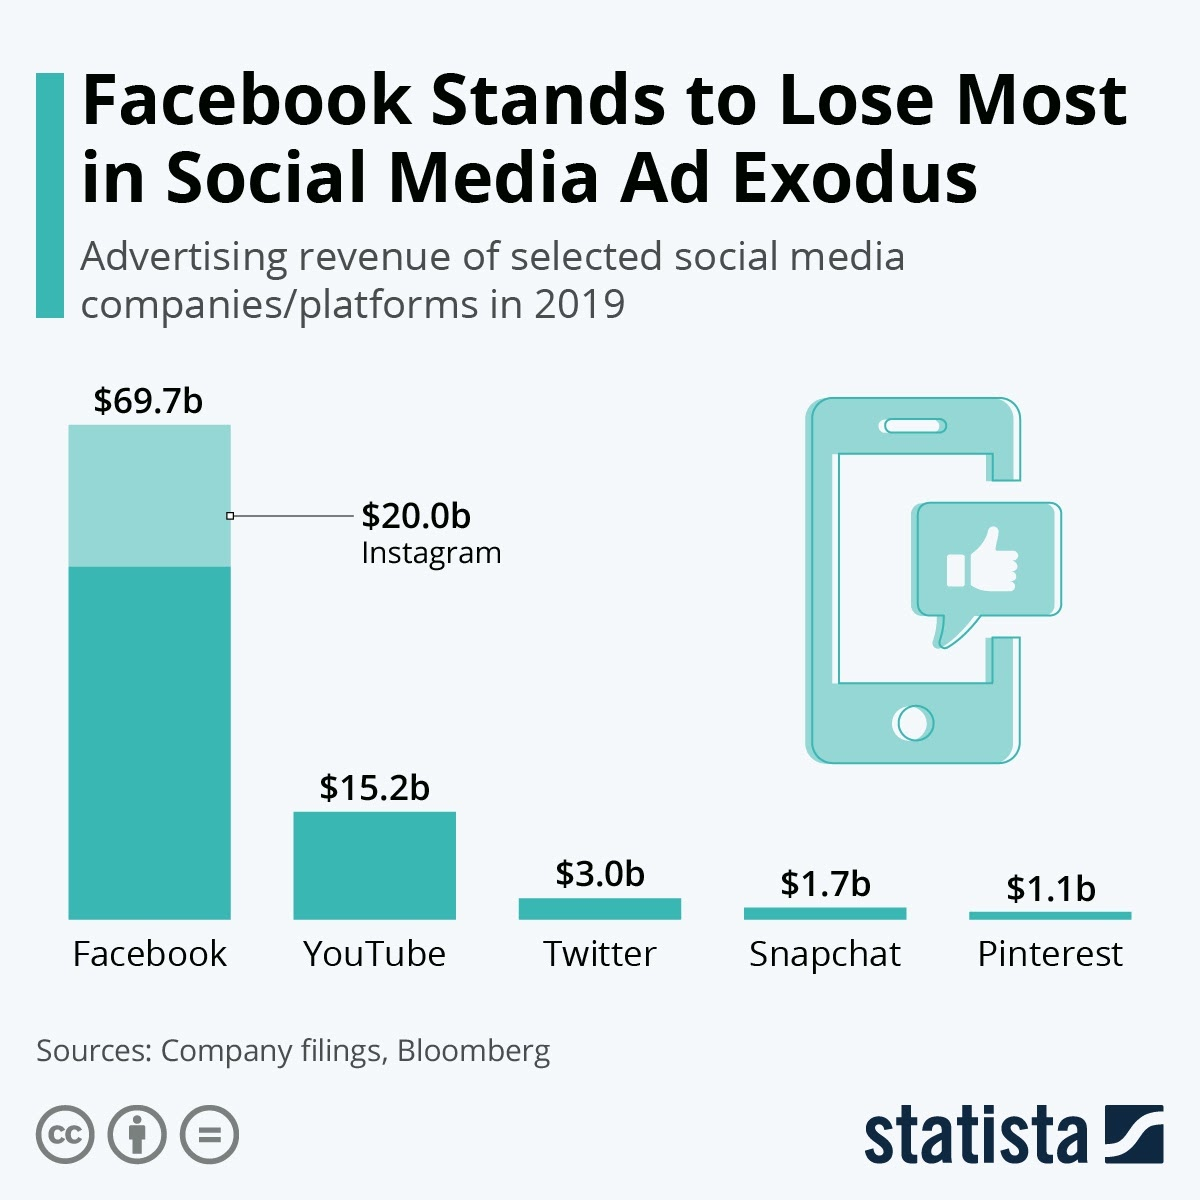 Facebook Stands to Lose Most in Social Media Ad Exodus #infographic